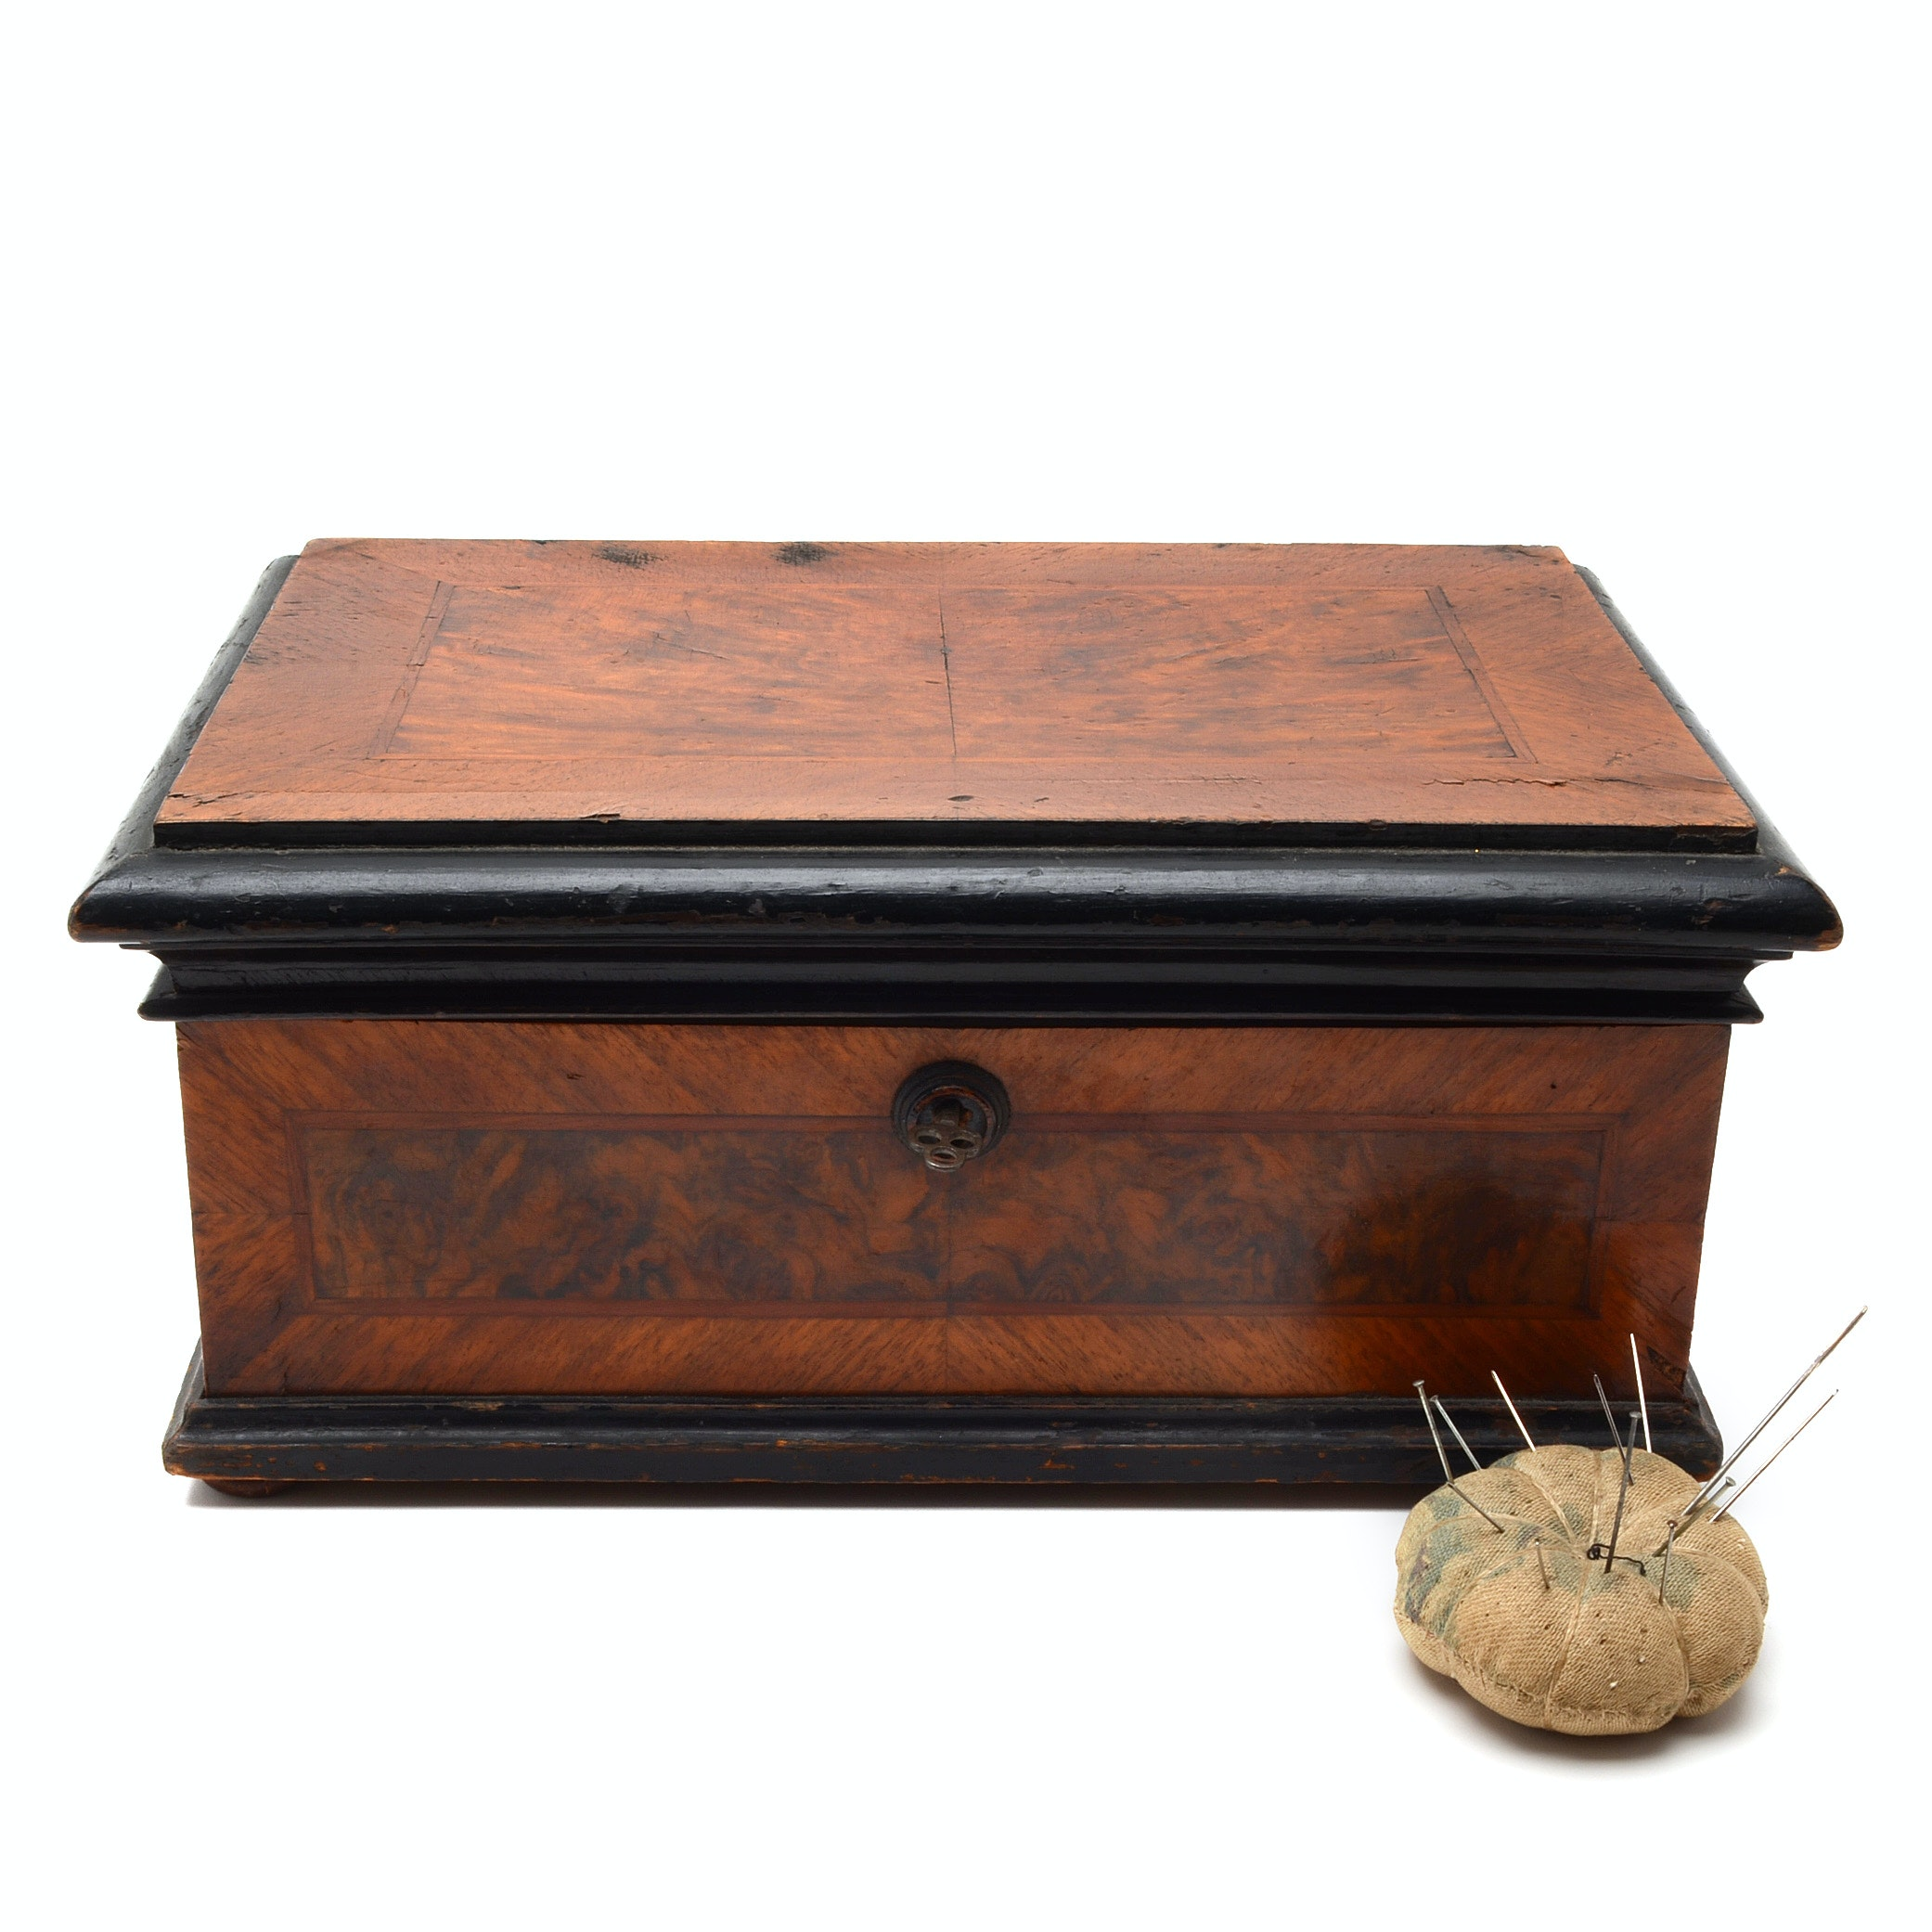 Antique Inlaid Sewing Box with Burled Panels, Late 19th Century